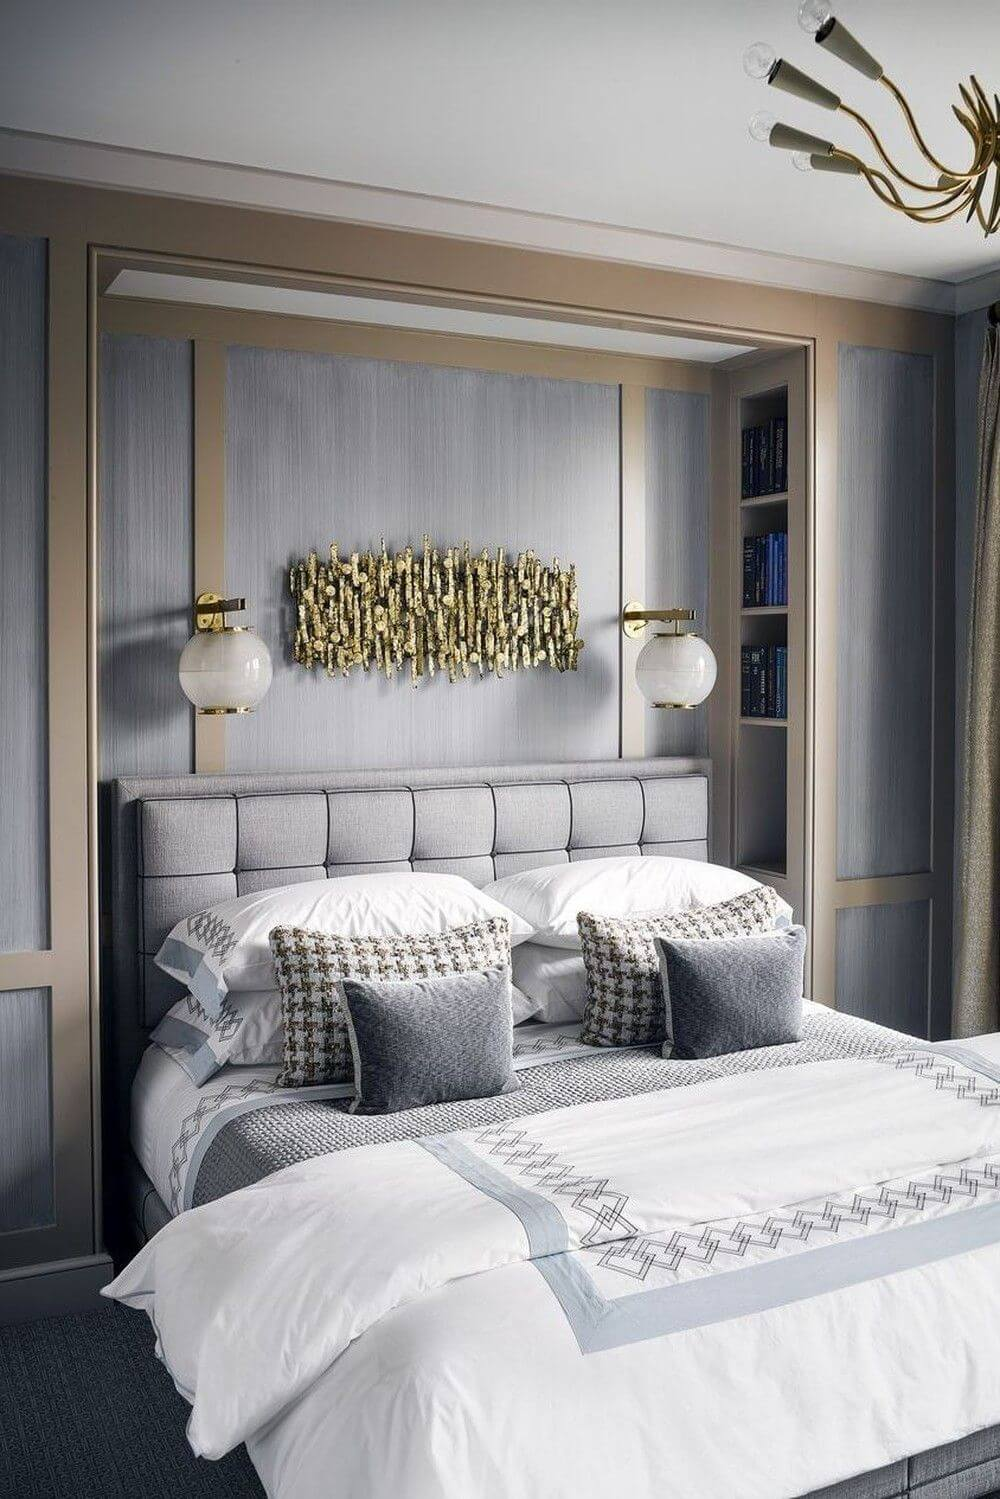 30 Modern And Beautiful Bedroom Lighting Ideas Live Enhanced